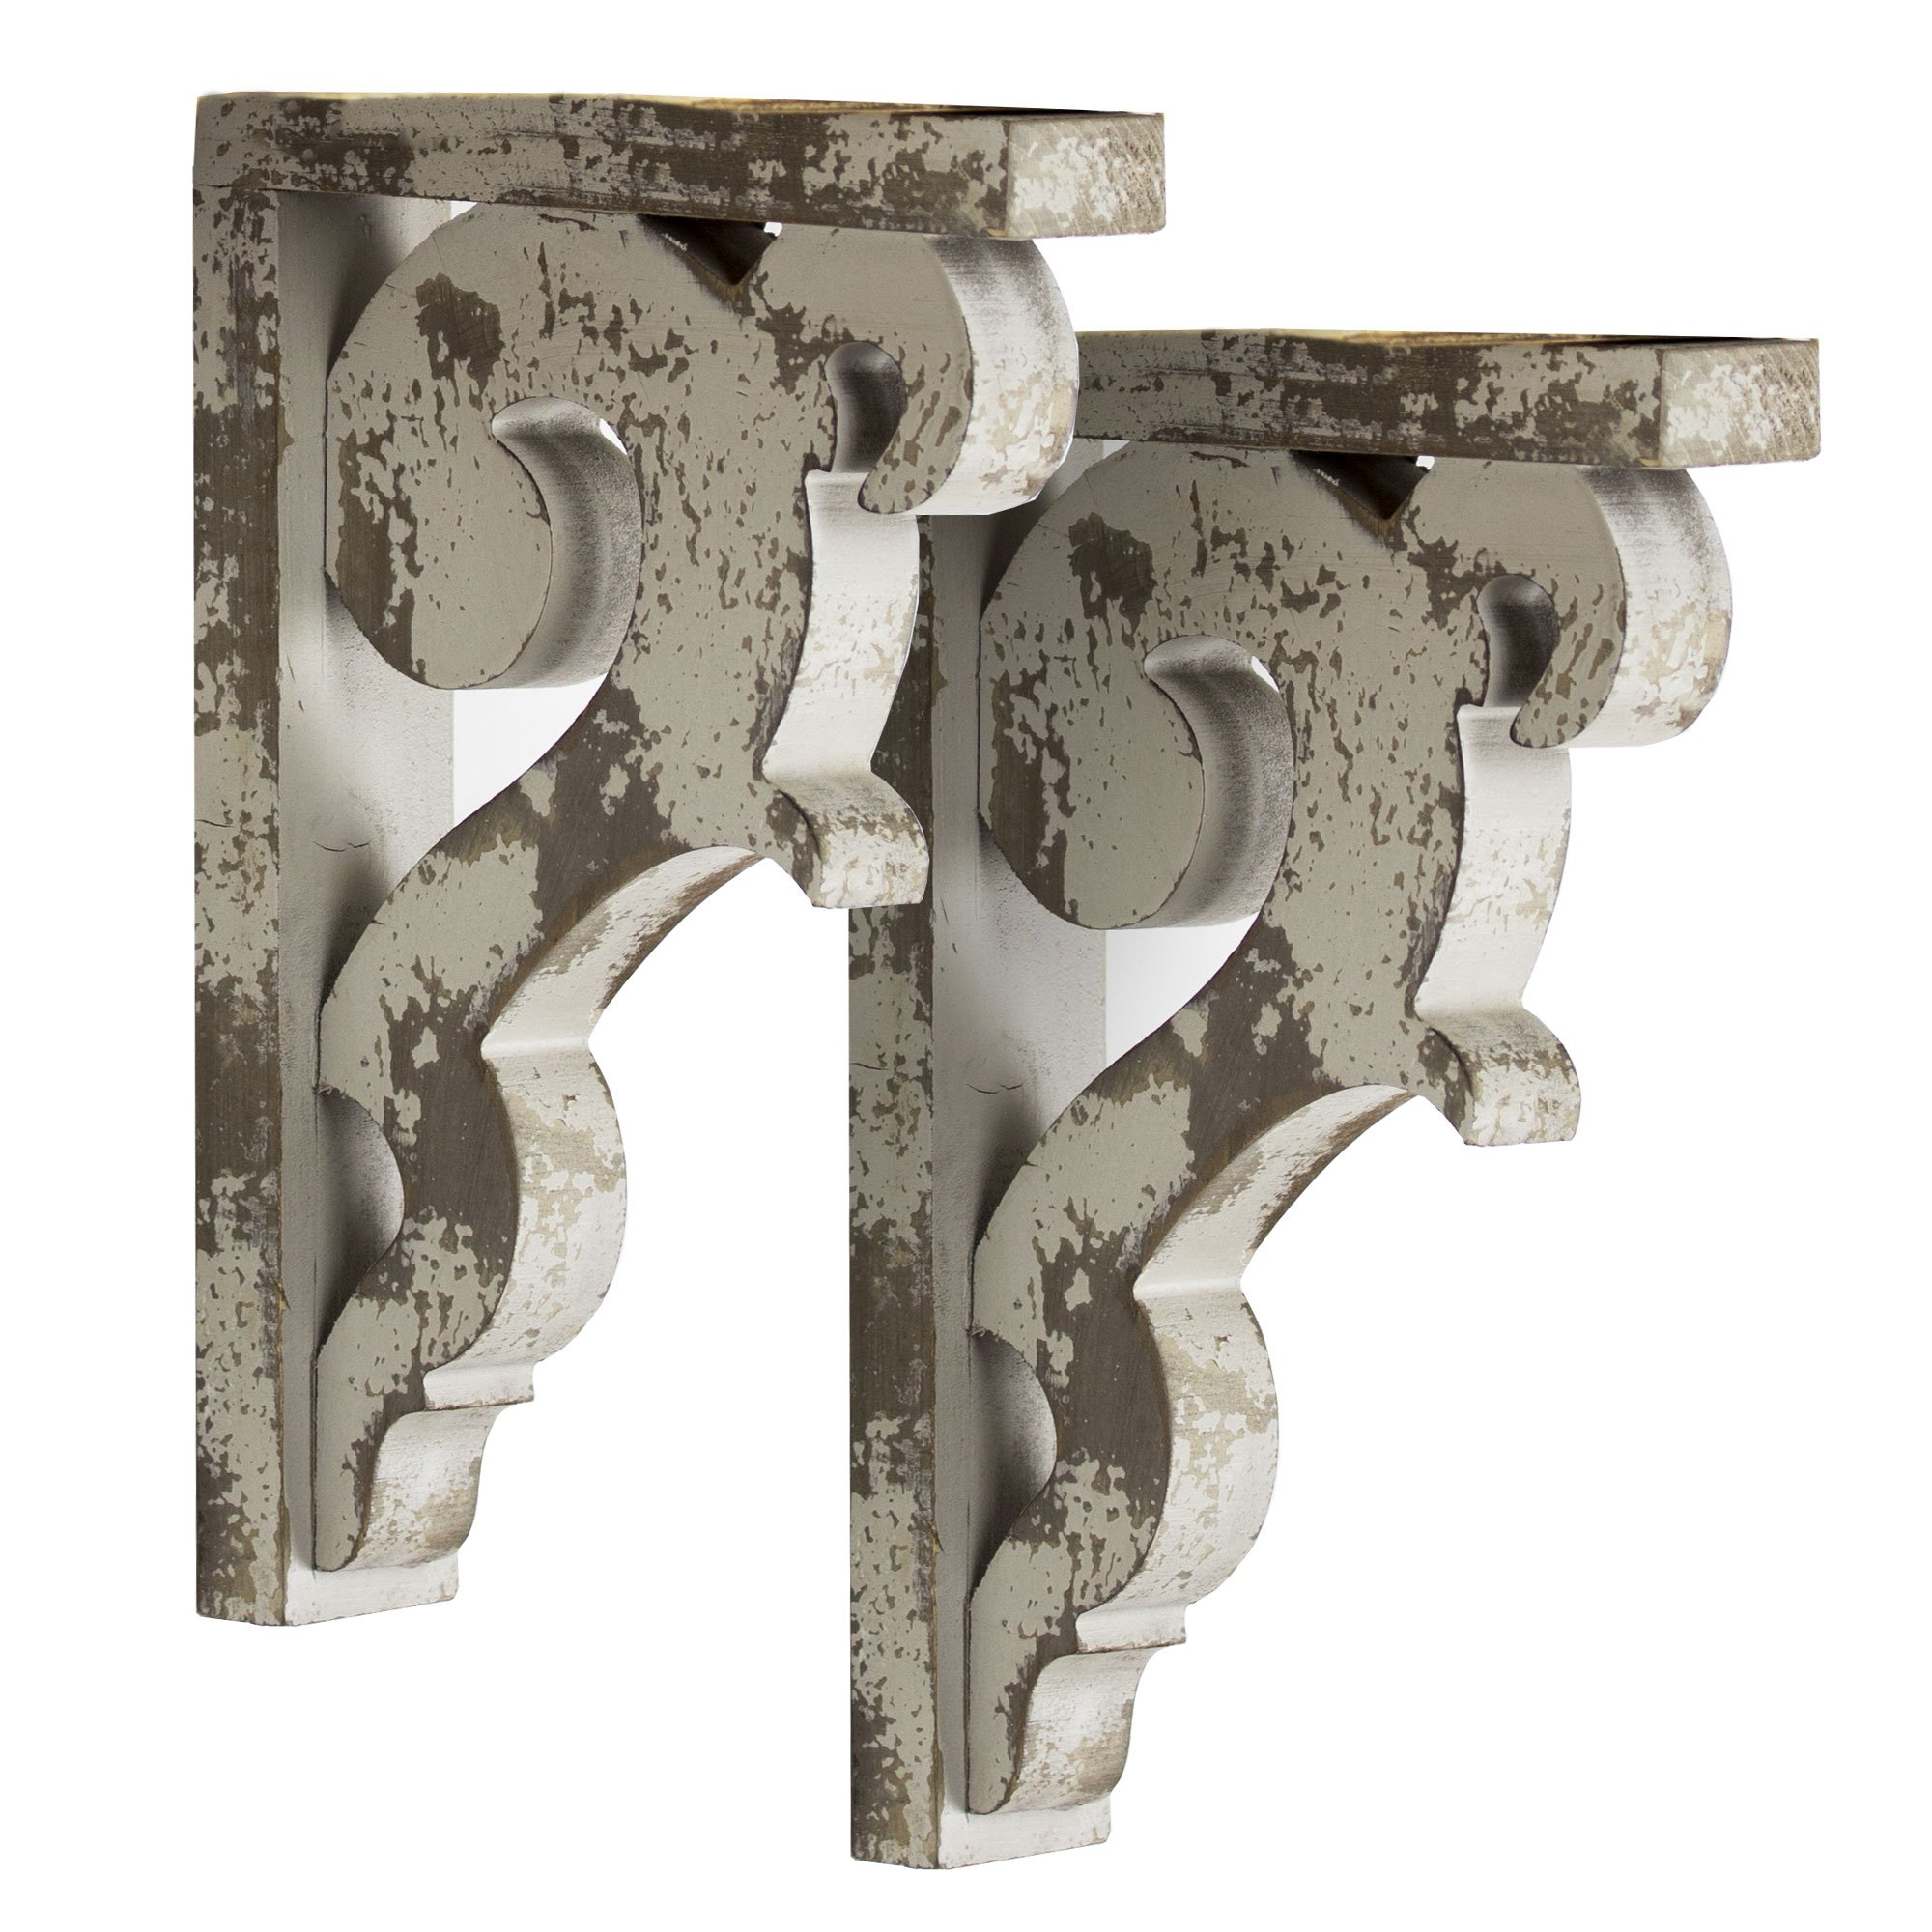 American Art Décor Wooden Corbels Shelf Brackets Vintage Farmhouse Decor (Set of 2 - Gray)